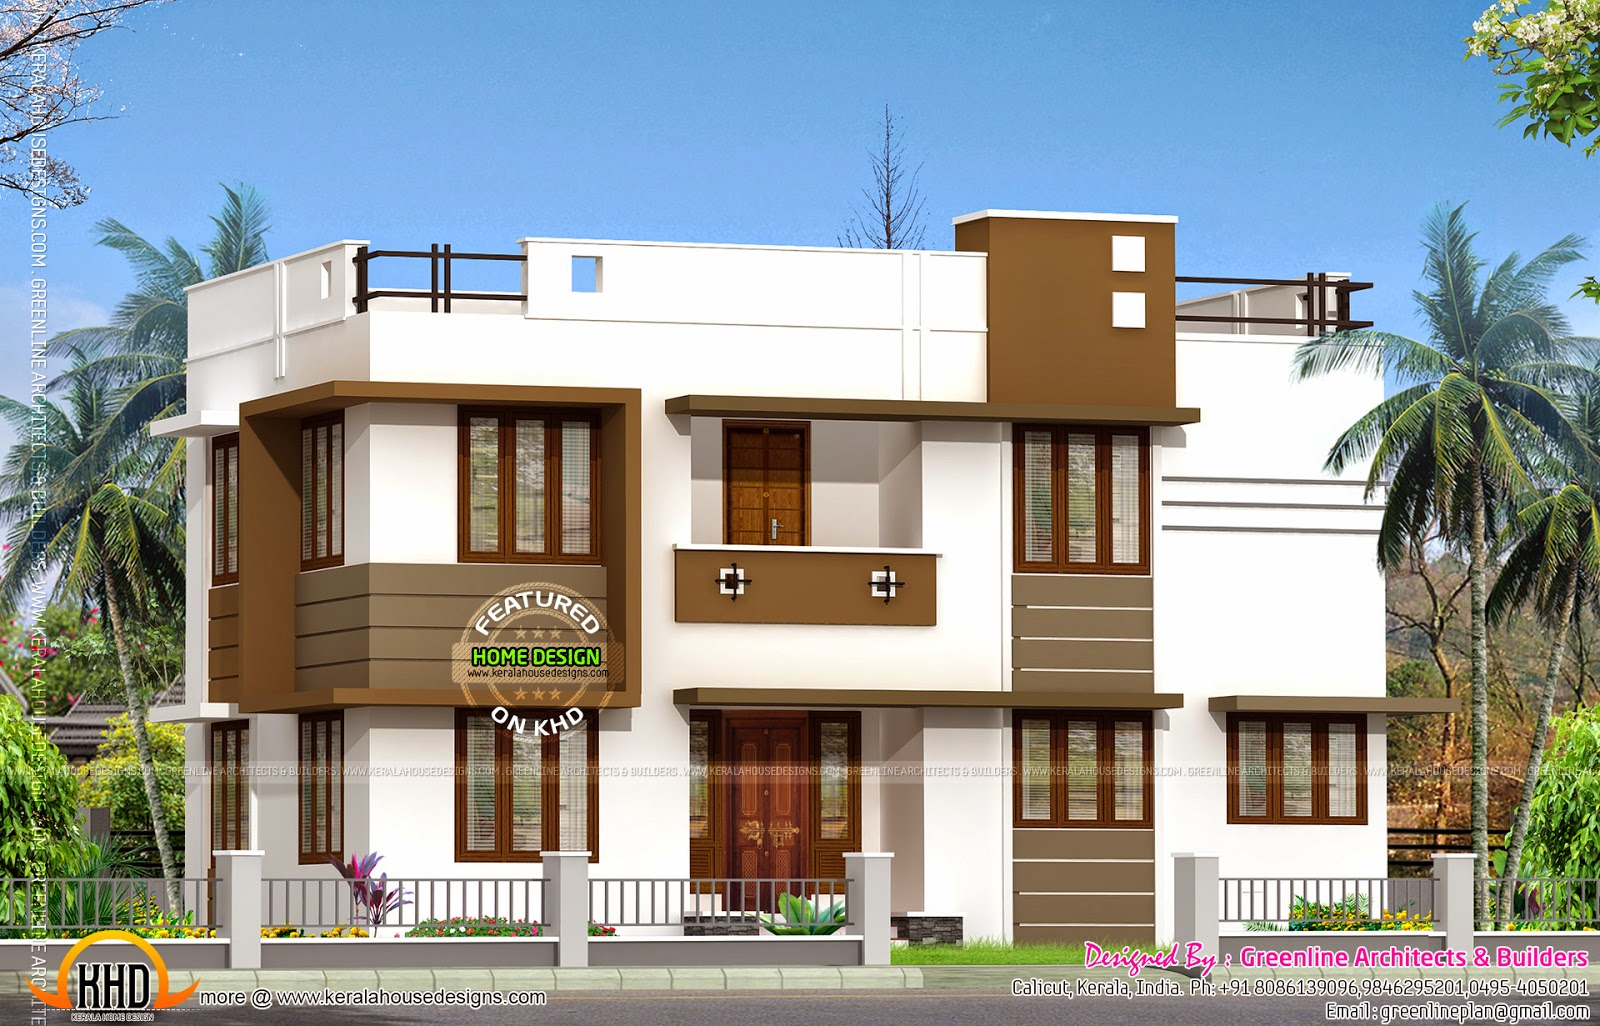 Low budget double storied house kerala home design and floor plans Low budget home design ideas